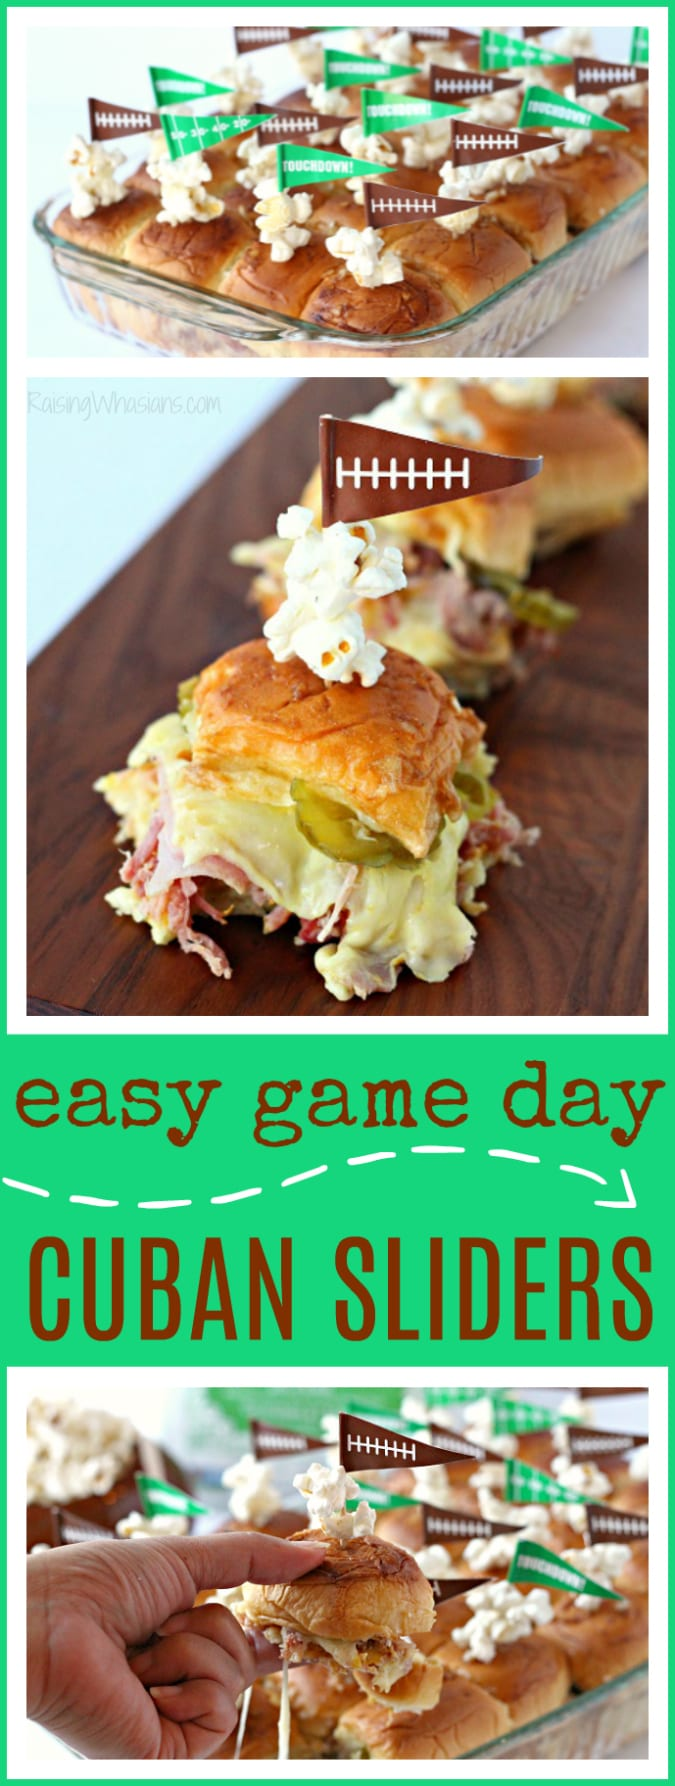 Easy game day Cuban sliders